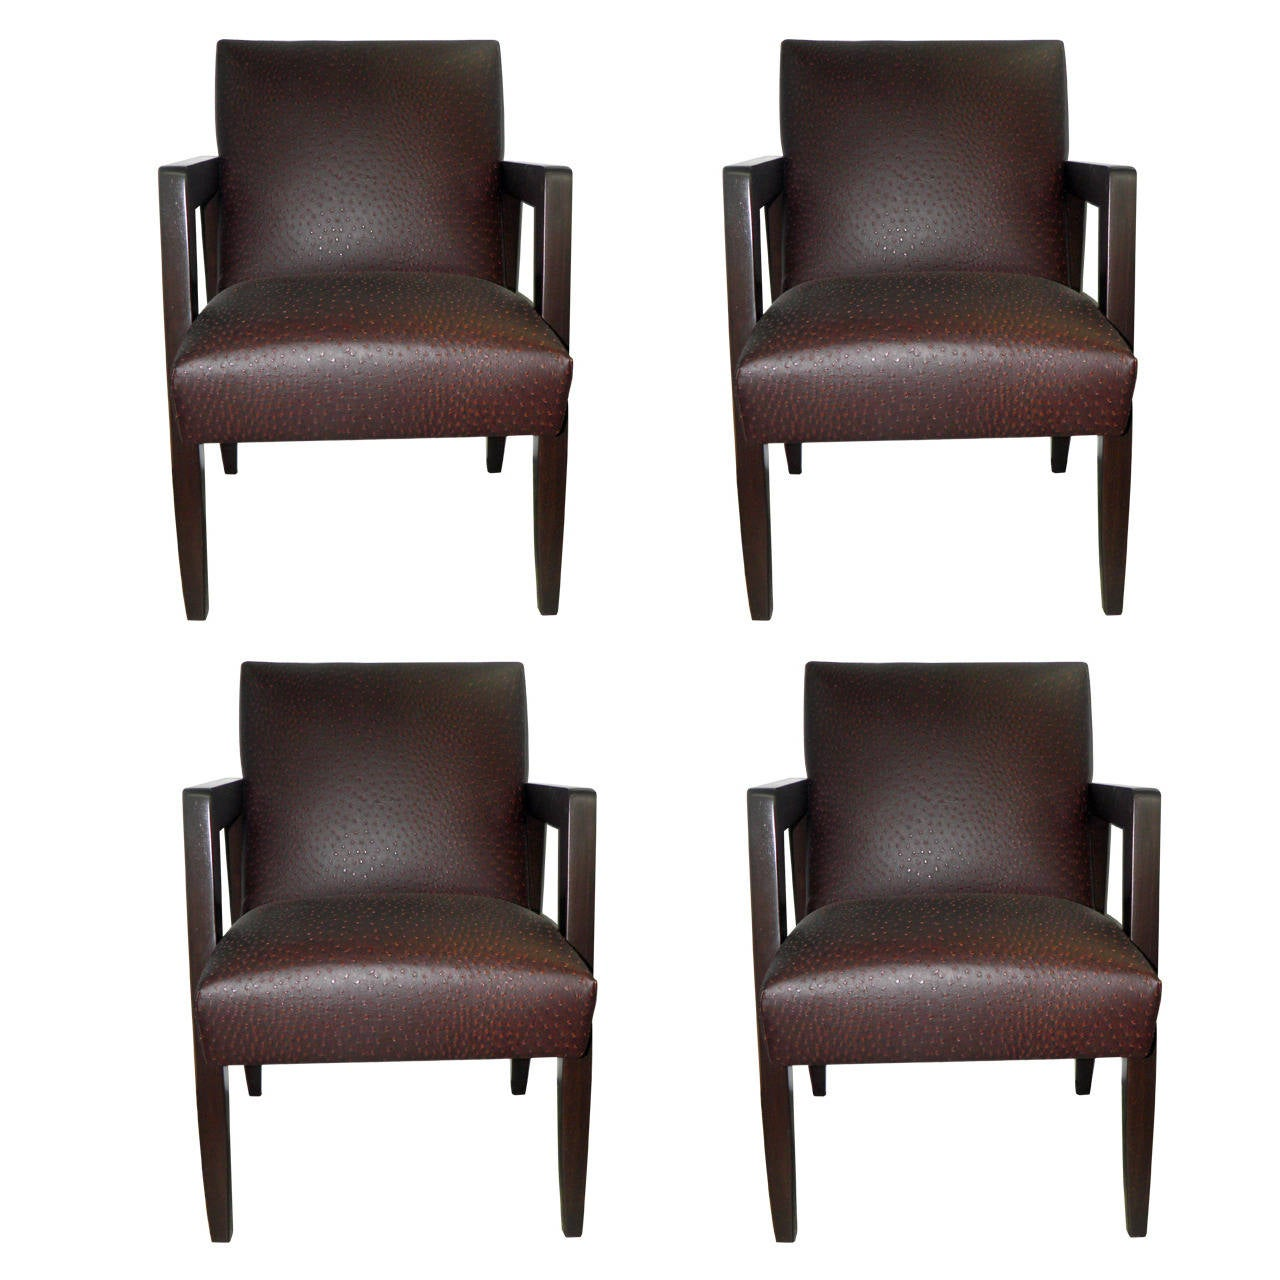 arm chairs for sale office chair hip pain set of four very chic 1940s armchairs at 1stdibs